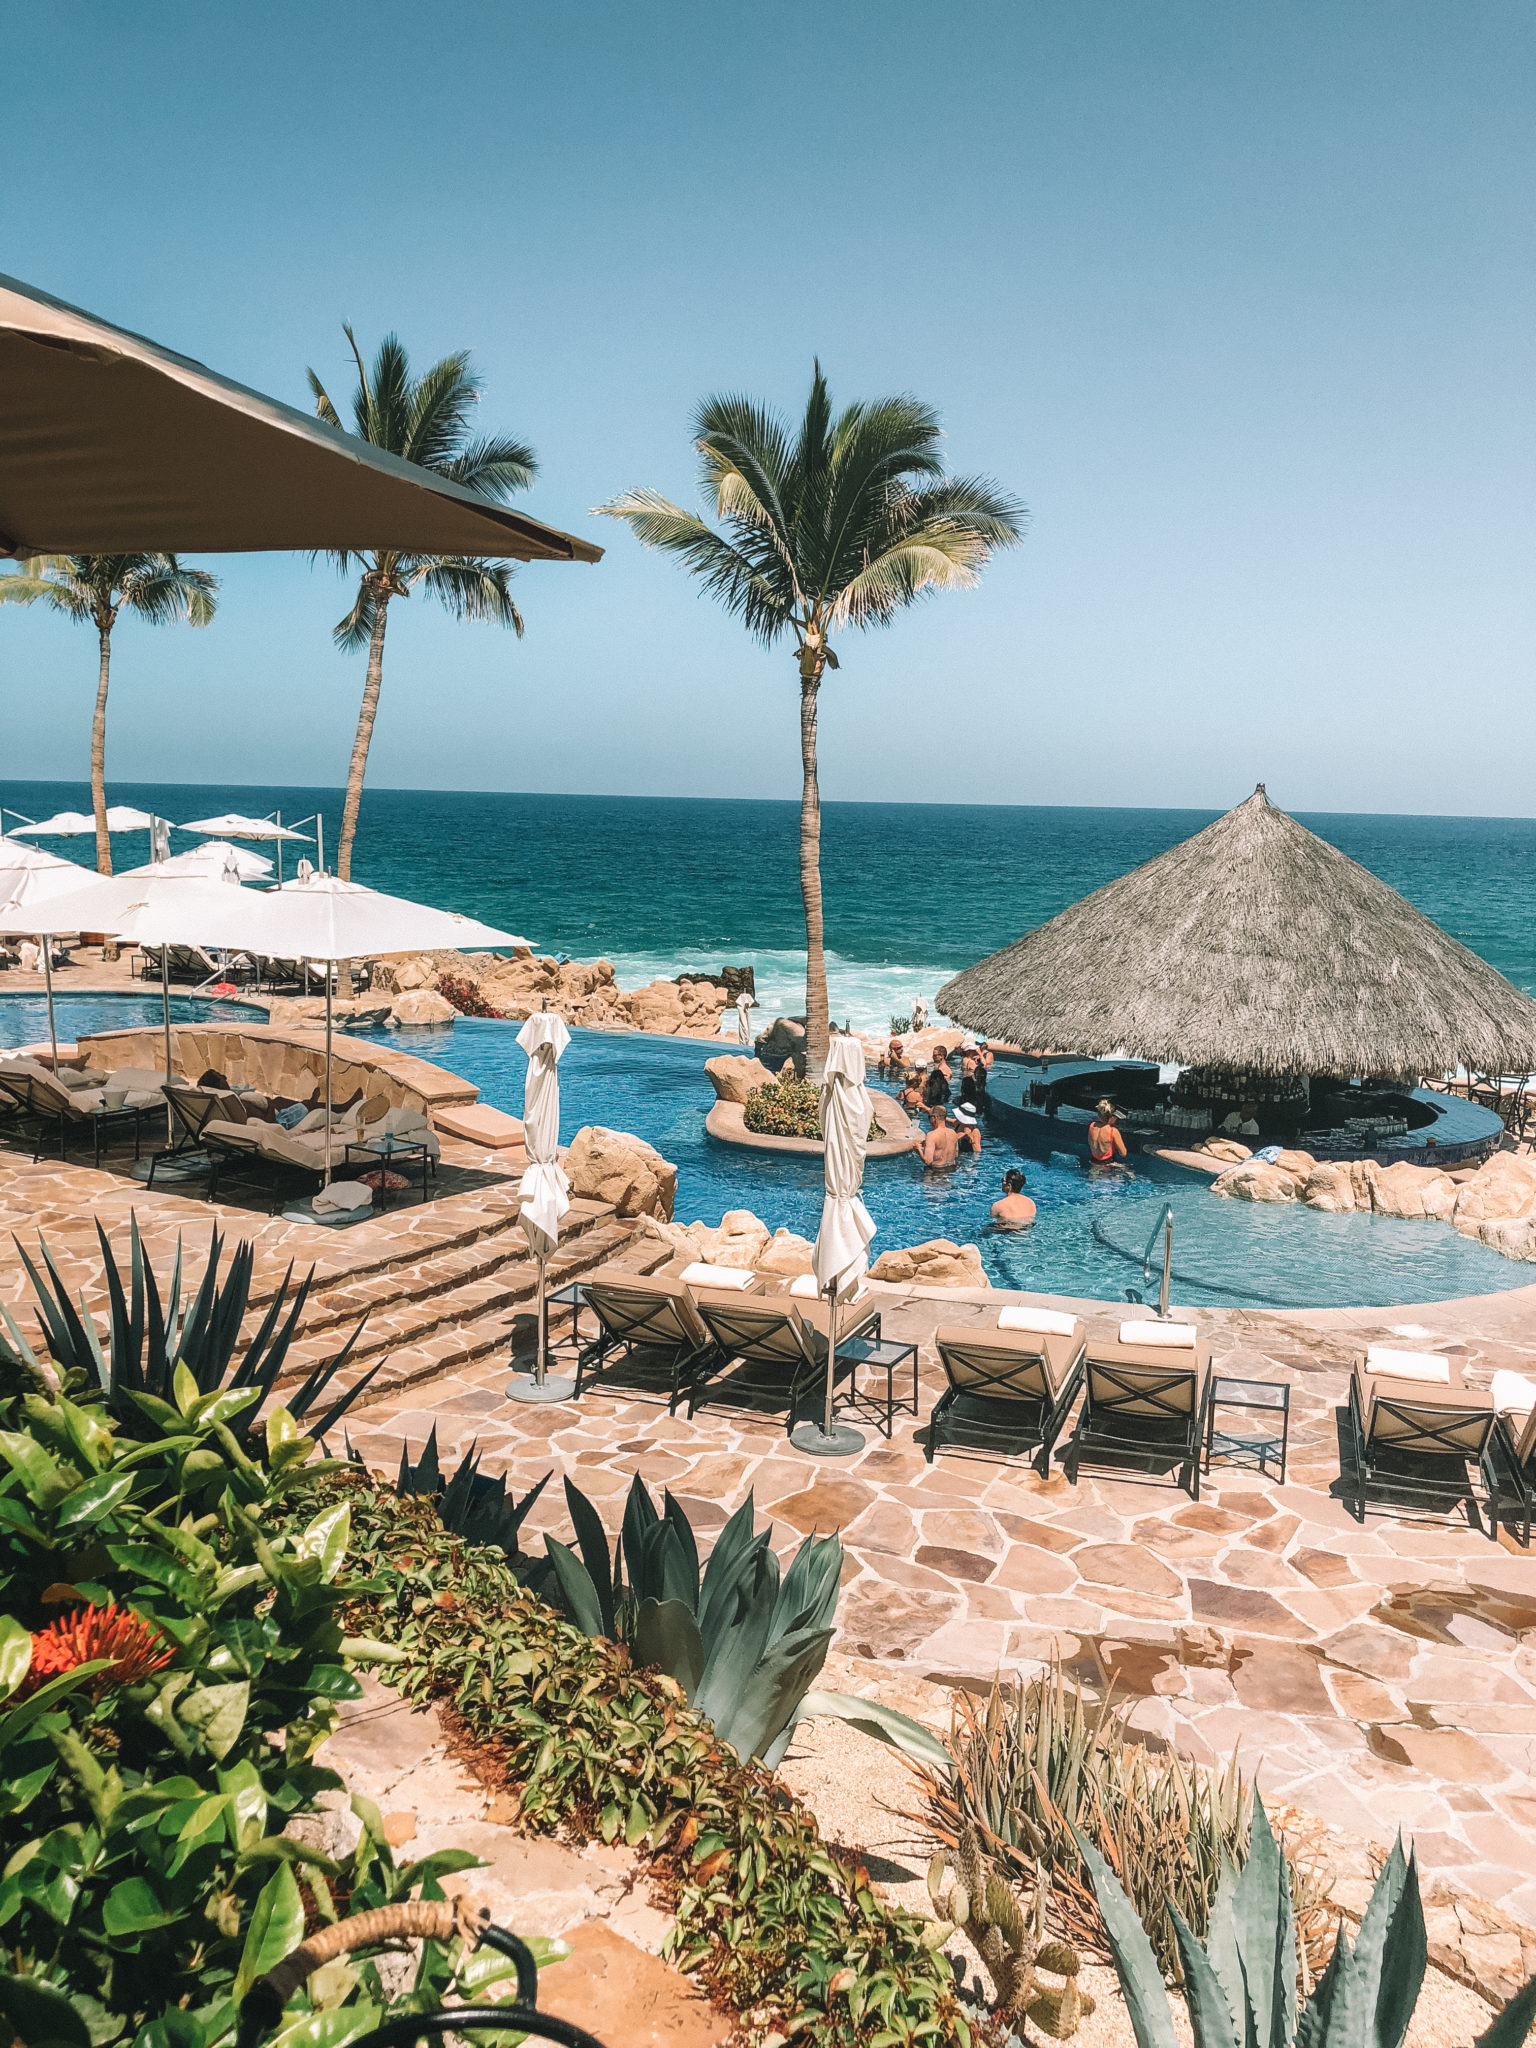 Los Cabos | WORLD OF WANDERLUST